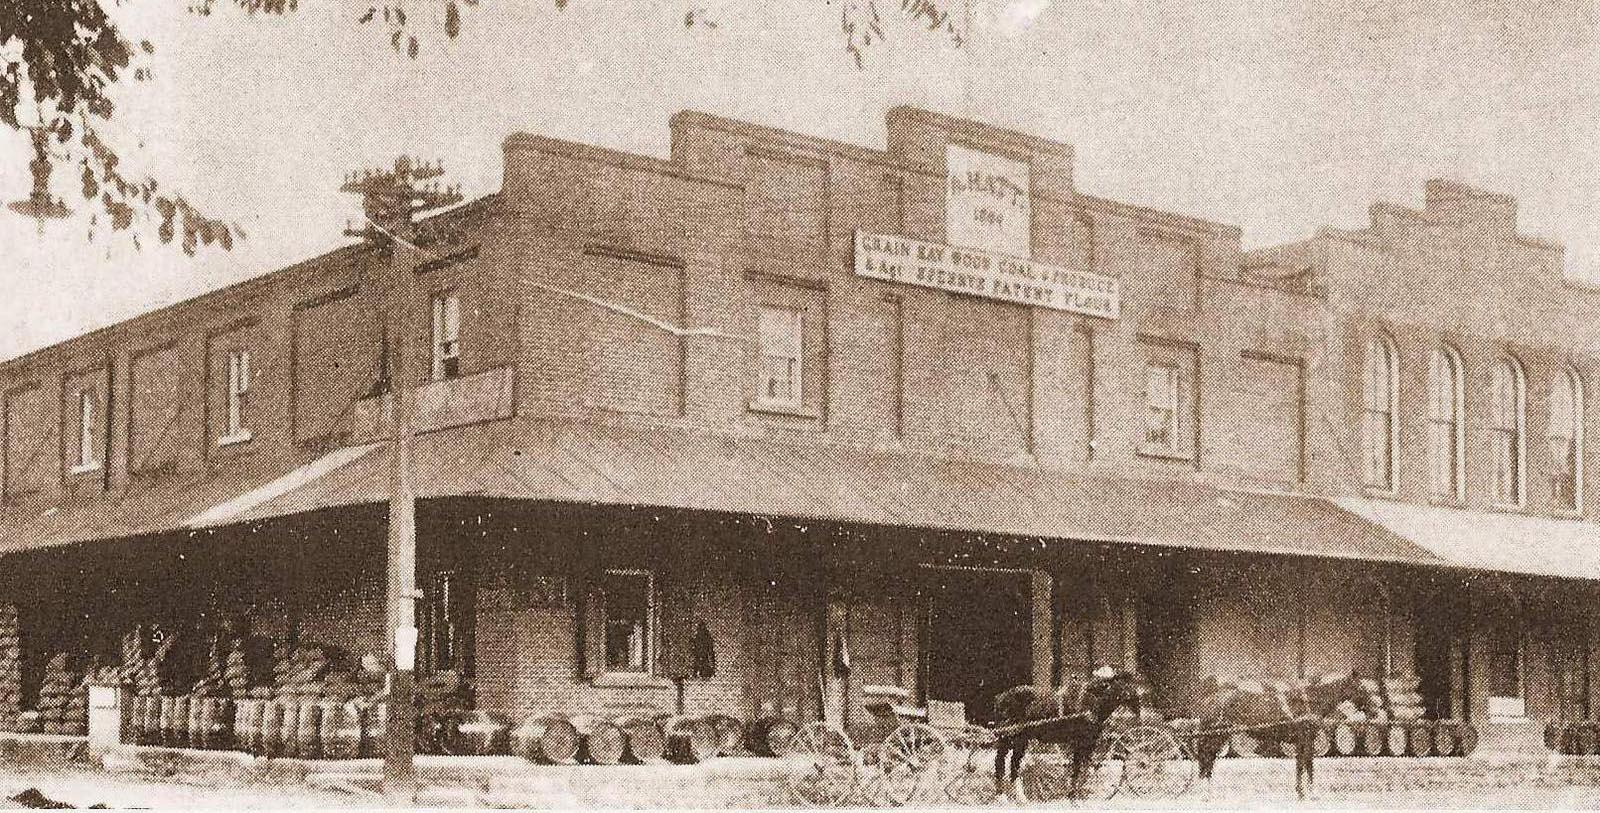 Image of Historic Exterior, Napa River Inn, Napa, California, 1884 Member of Historic Hotels of America, Discover